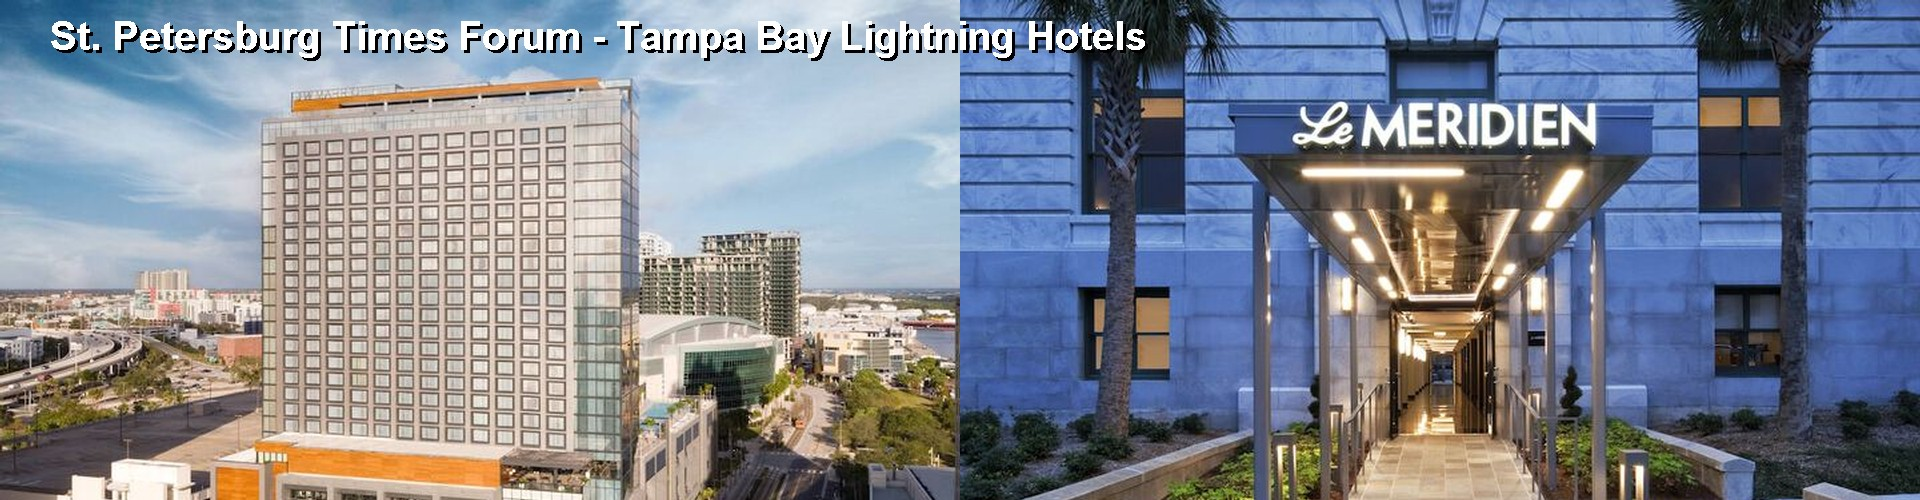 5 Best Hotels near St. Petersburg Times Forum - Tampa Bay Lightning